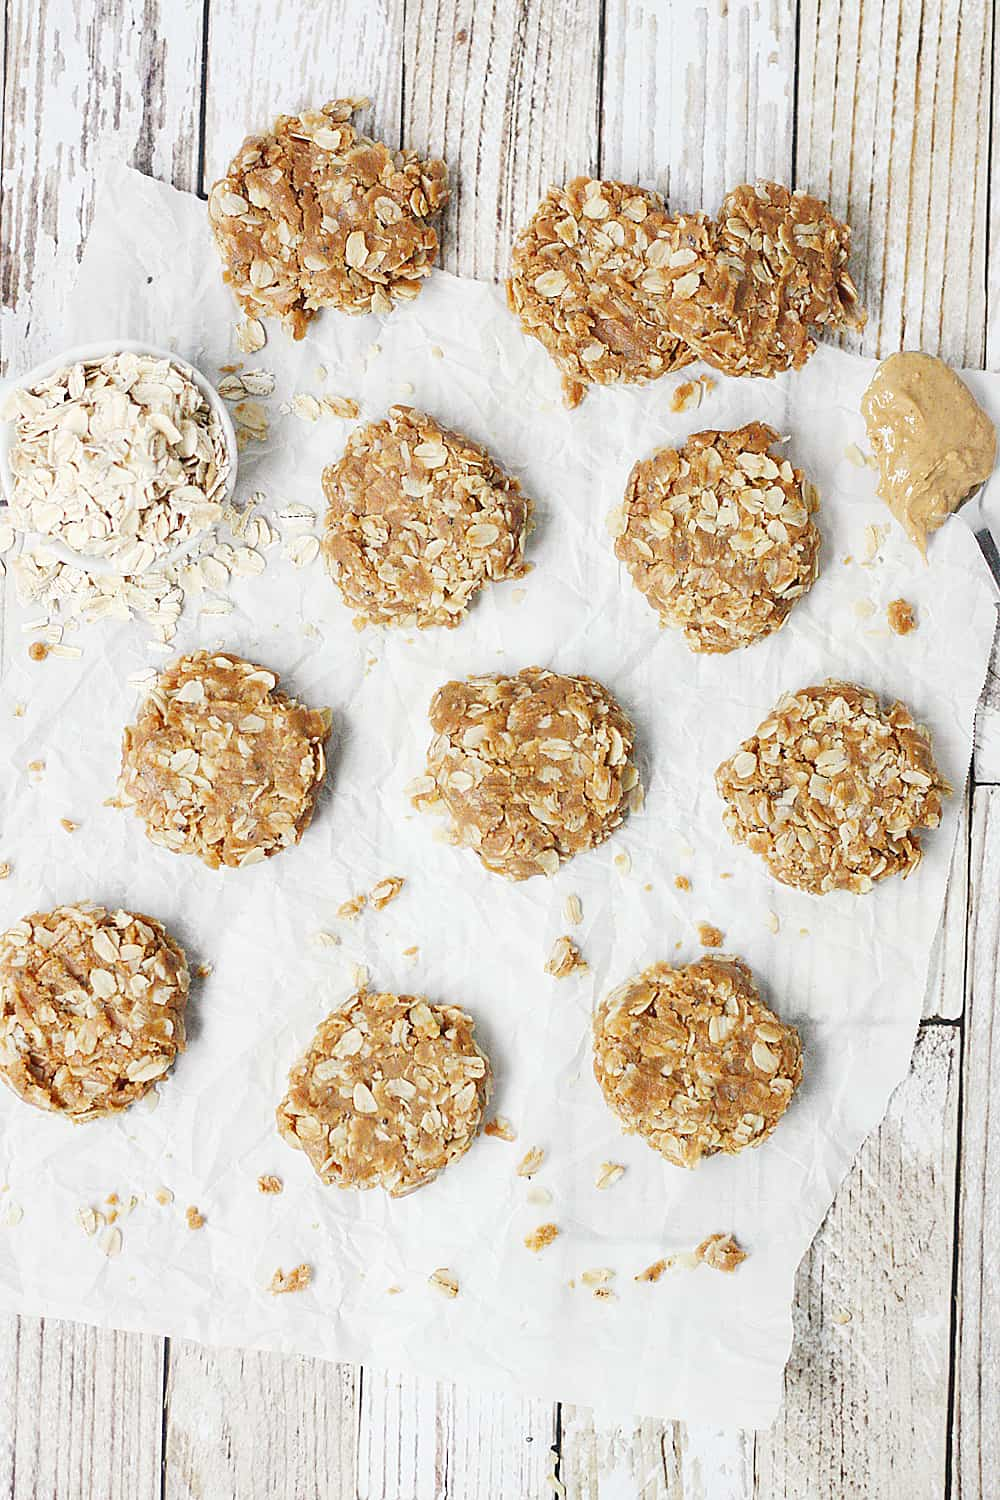 Healthy No-Bake Peanut Butter Oatmeal Protein Cookies --These healthy no bake cookies aren't packed with ingredients (only peanut butter, maple syrup, oatmeal, and vanilla protein) but they are packed with yummy flavor! They are as irresistible as they are easy! #halfscratched #nobake #cookies #healthyrecipe #oatmealcookies #peanutbutter #proteincookies #proteinbites #healthy #snack